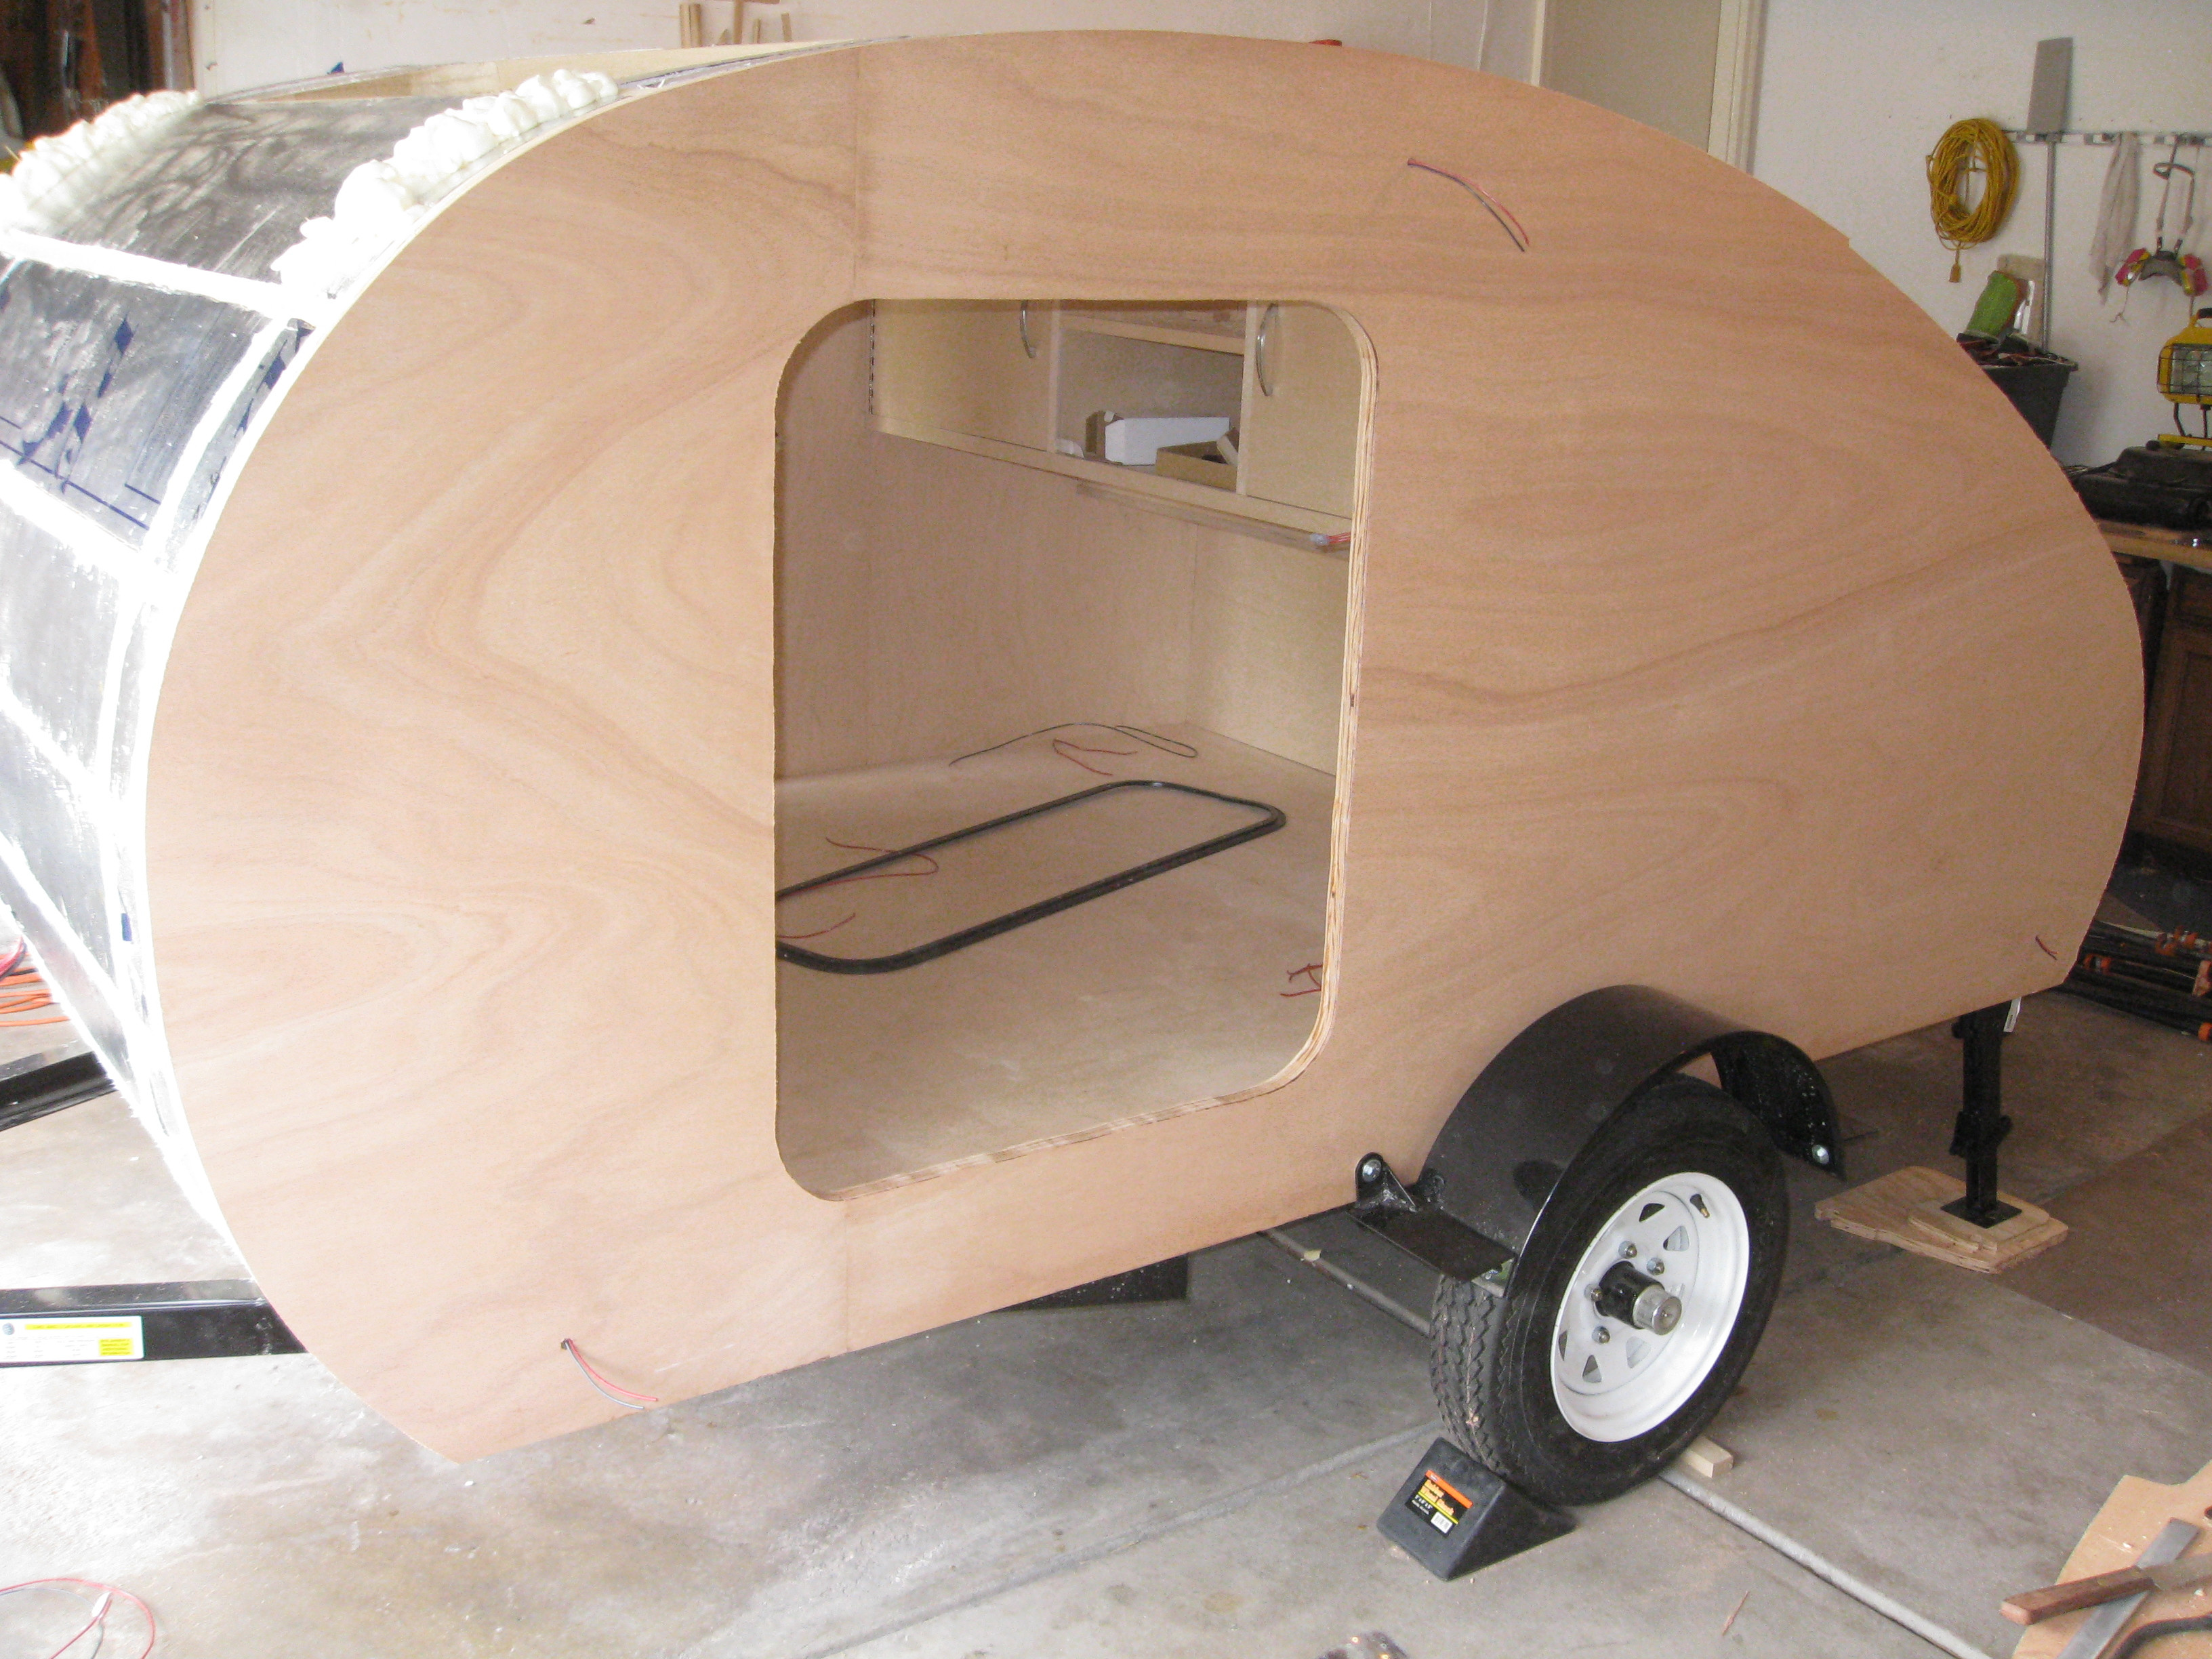 How To Build Your Own Teardrop Trailer From Scratch